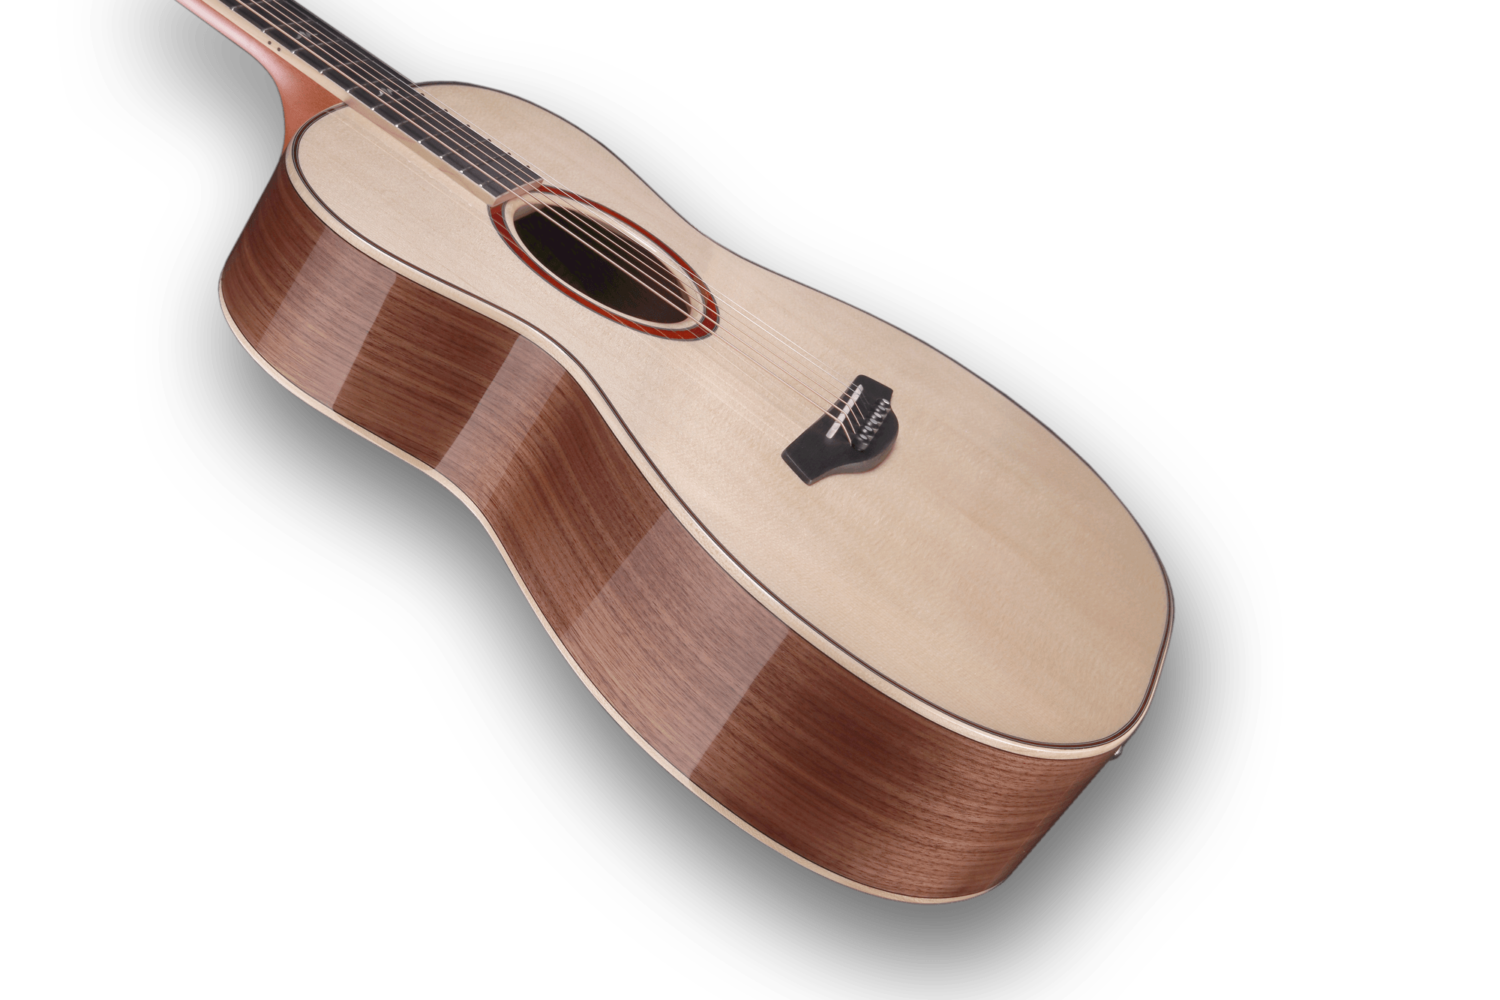 2019 Orange OM SW Lakovani Furch Guitars